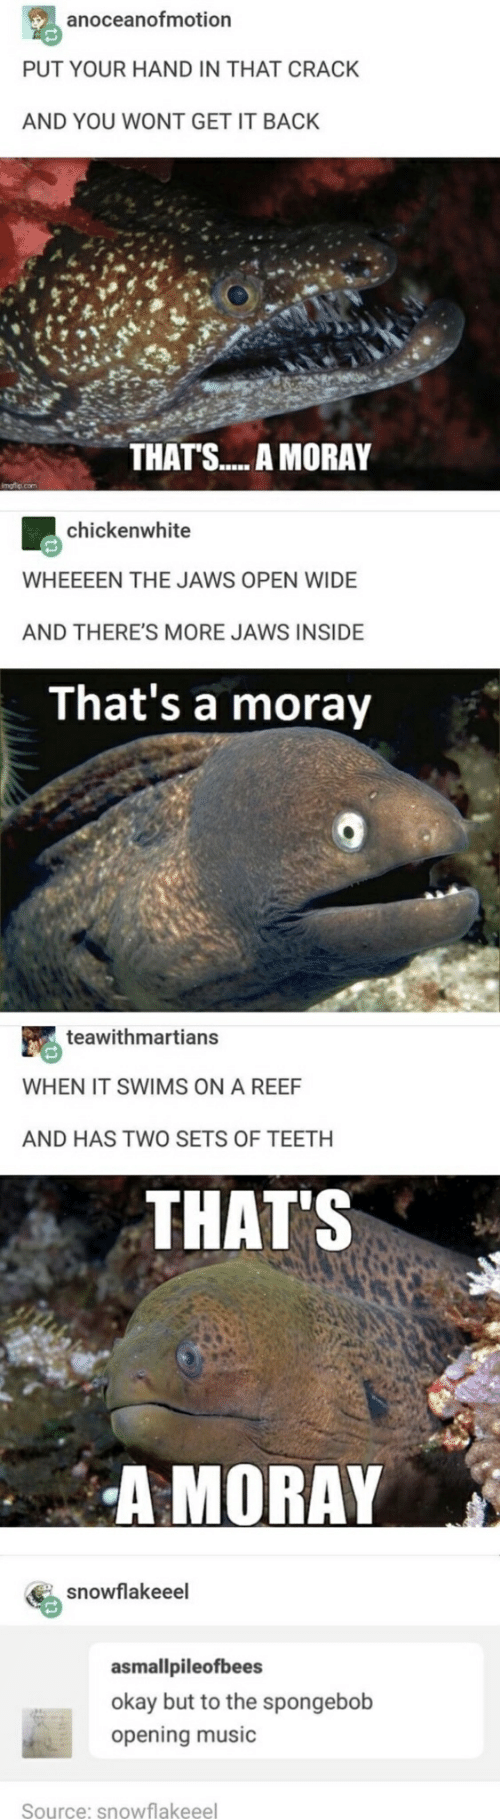 Music, SpongeBob, and Okay: anoceanofmotion  PUT YOUR HAND IN THAT CRACK  AND YOU WONT GET IT BACK  THATS.... A MORAY  chickenwhite  WHEEEEN THE JAWS OPEN WIDE  AND THERE'S MORE JAWS INSIDE  That's a moray  teawithmartians  WHEN IT SWIMS ON A REEF  AND HAS TWO SETS OF TEETH  THAT'S  A MORAY  snowflakeeel  asmallpileofbees  okay but to the spongebob  opening music  Source: snowflakeeel